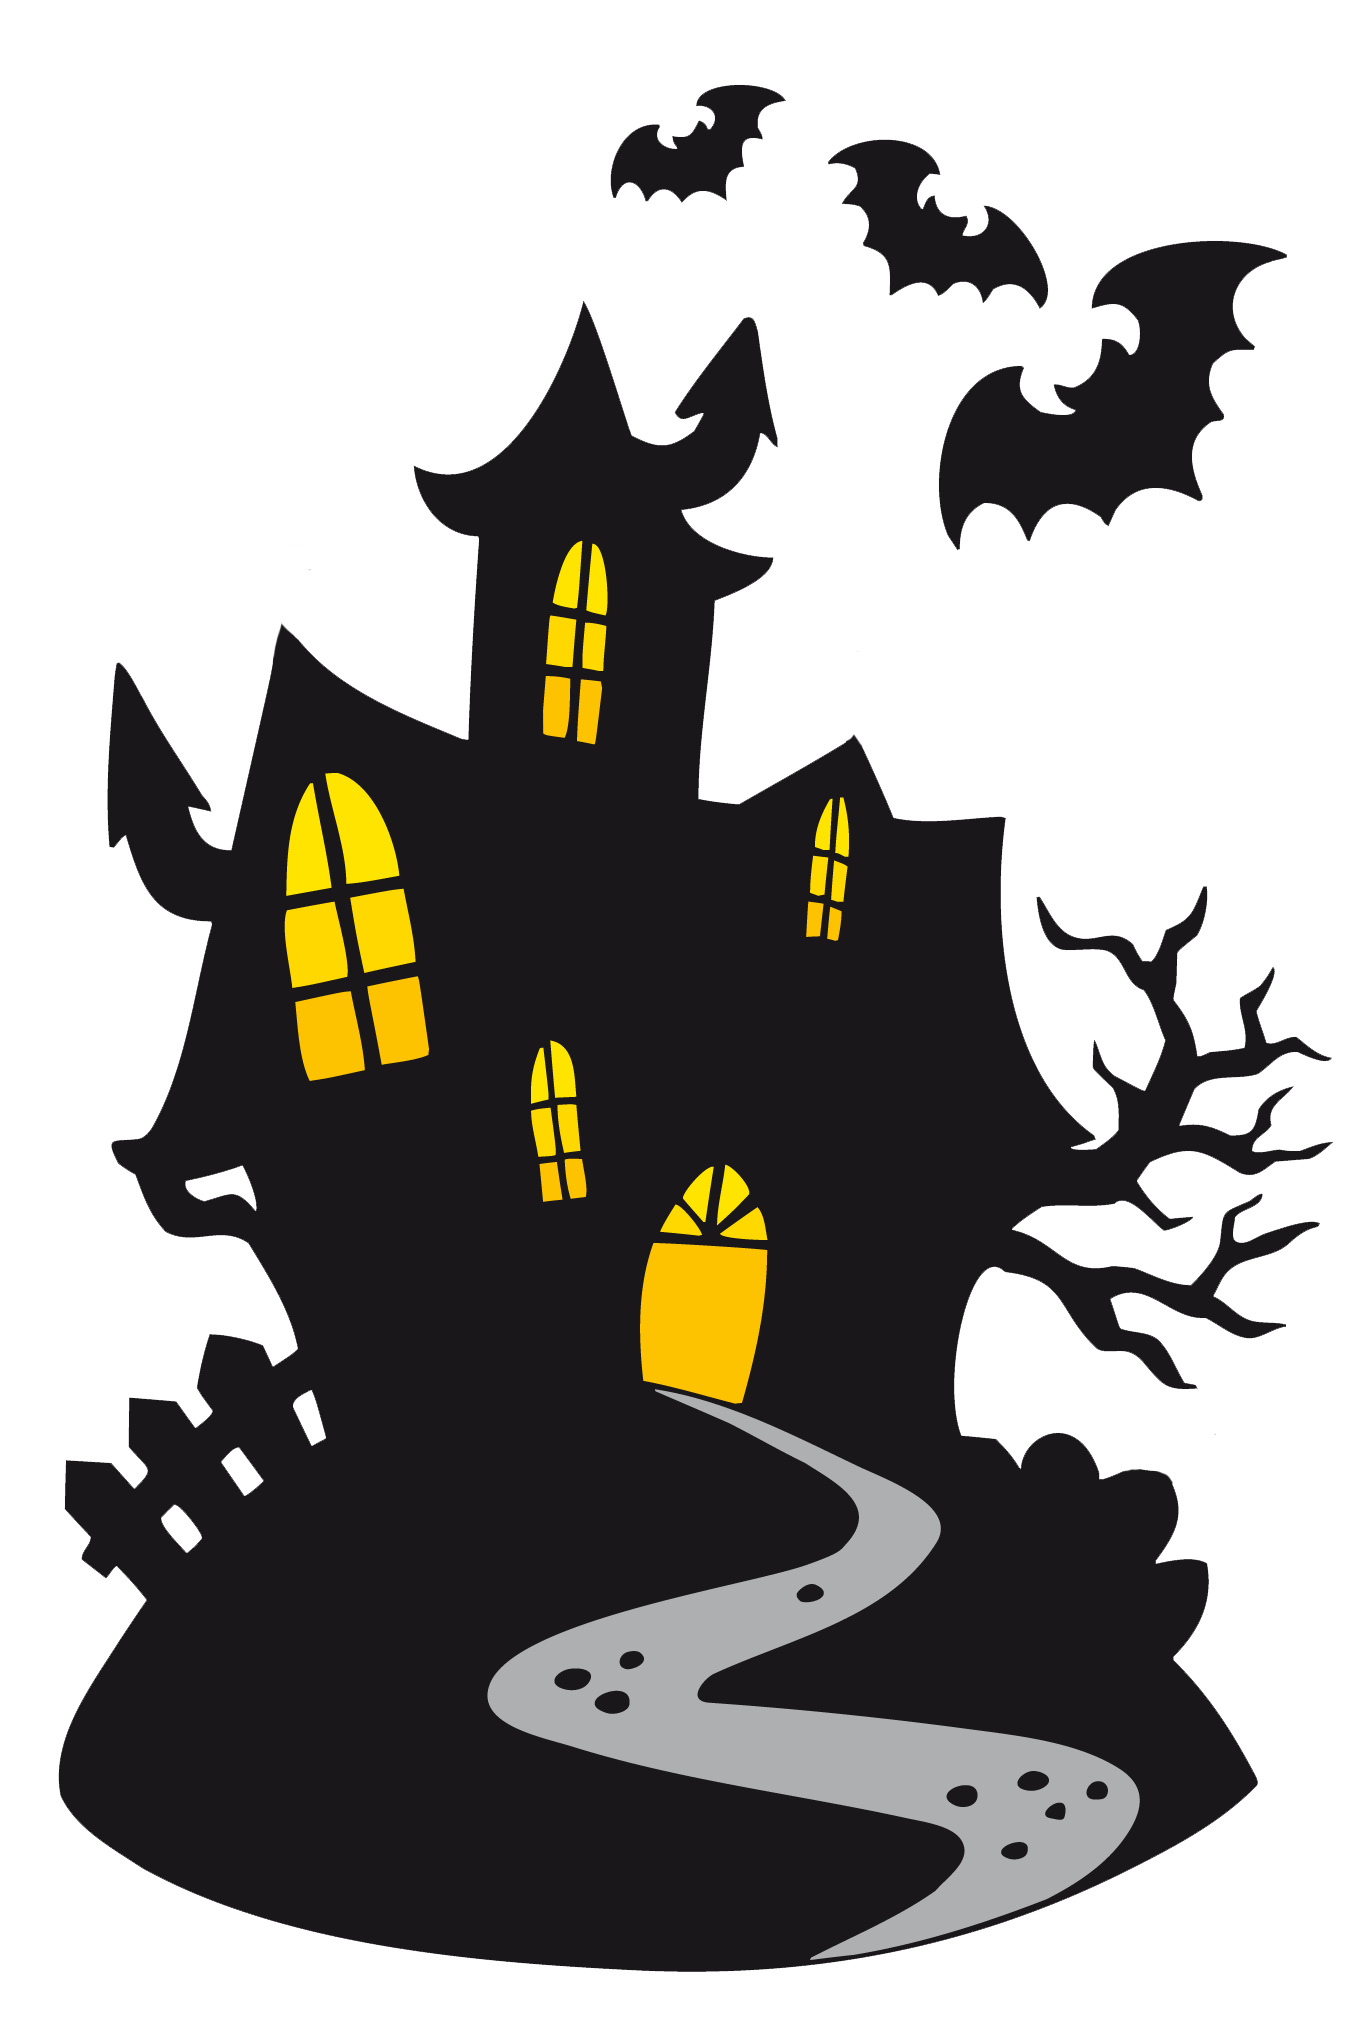 Halloween window clipart image royalty free library Happy Halloween Clipart Scary | Happy Halloween | Pinterest ... image royalty free library